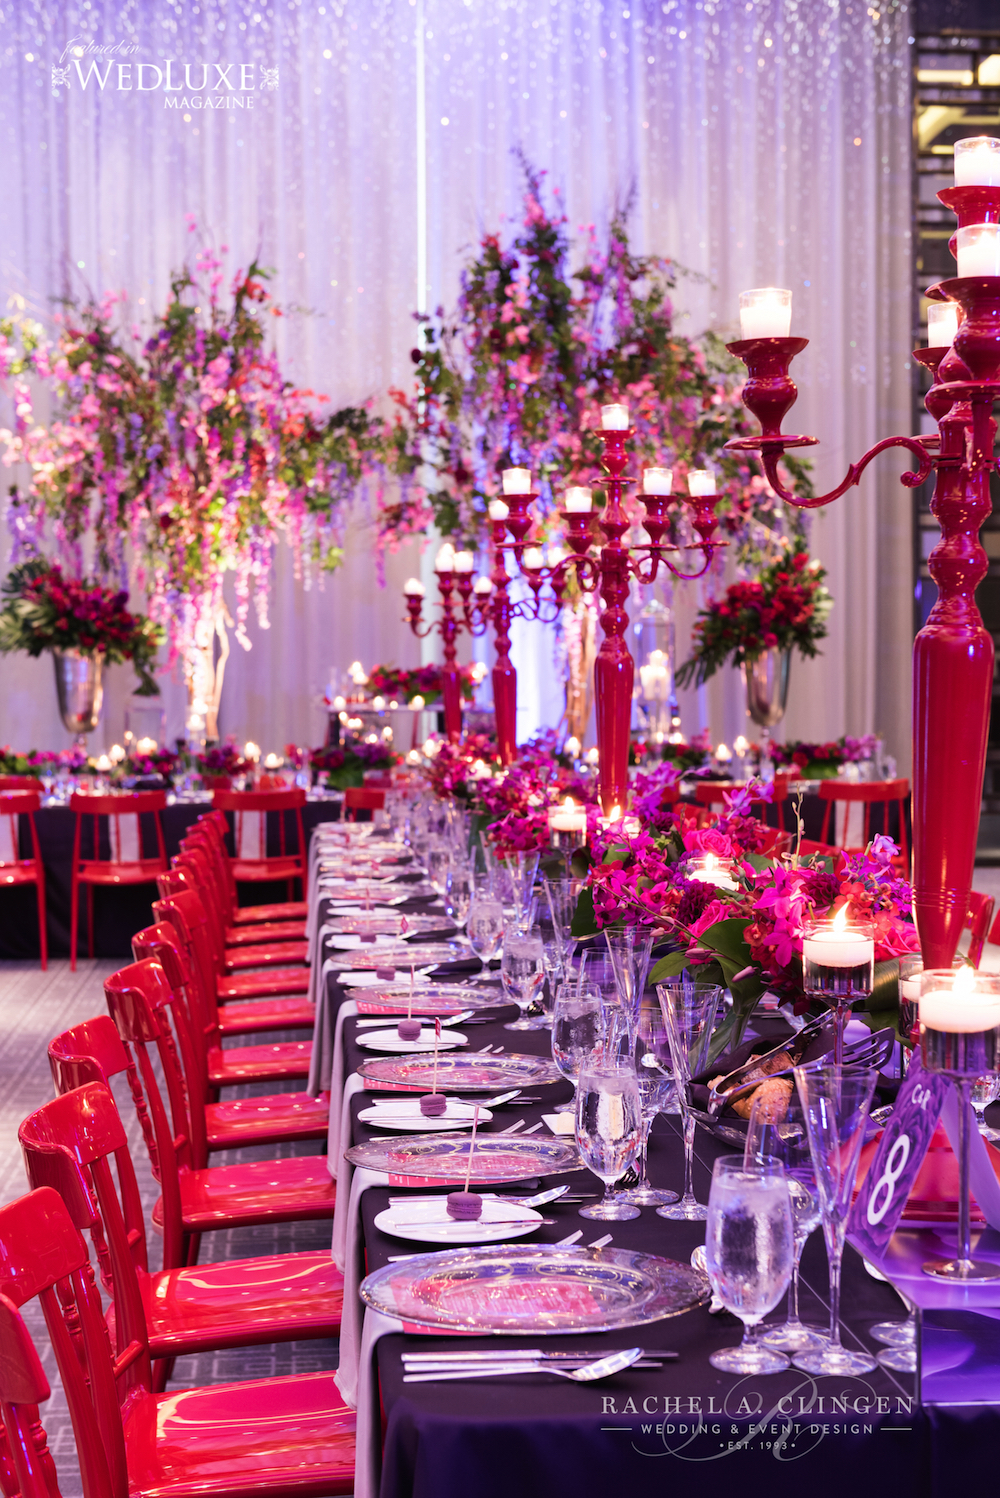 Blog wedding decor toronto rachel a clingen wedding for Red decoration for wedding